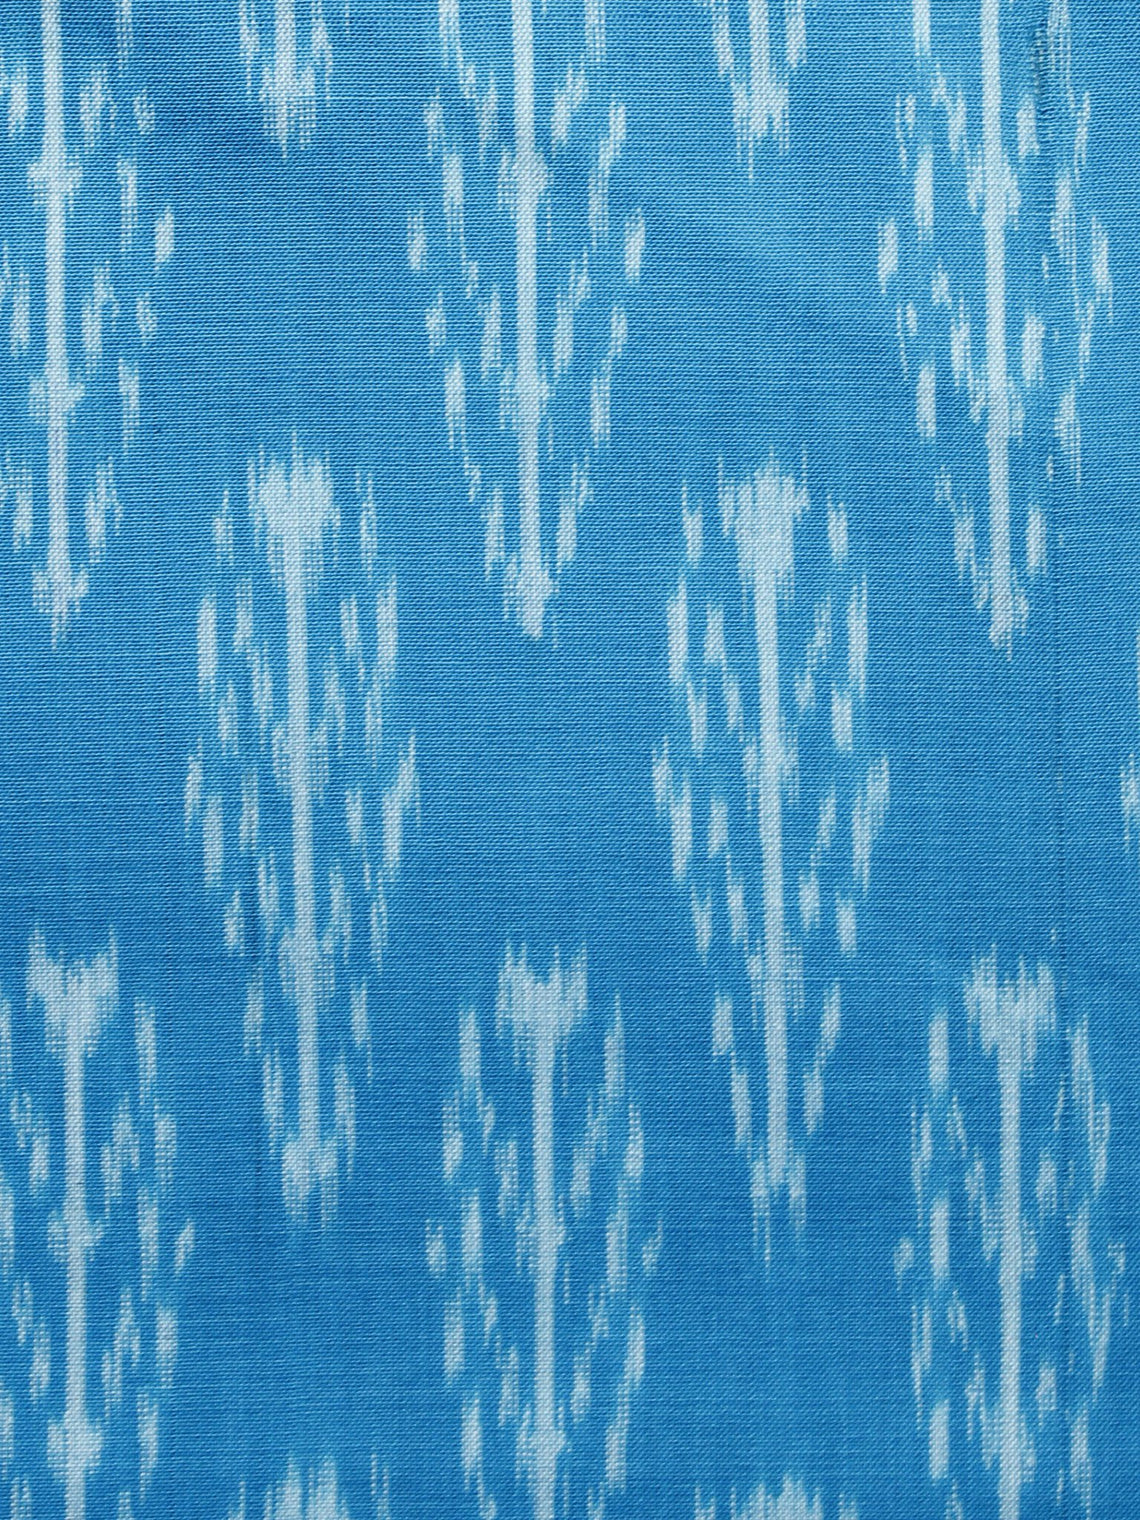 Sky Blue White Pochampally Hand Weaved Ikat Mercerised Fabric Per Meter - F003F1293